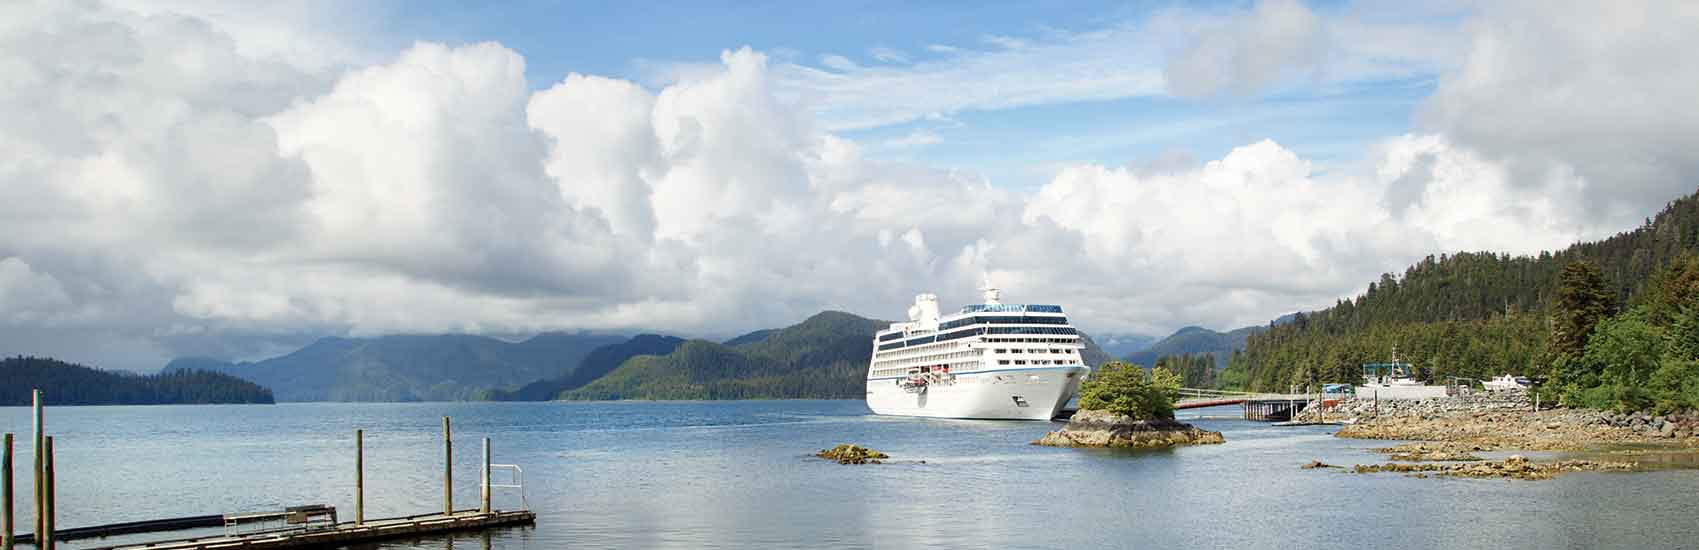 Offre Virtuoso exclusive d'Oceania Cruises 3